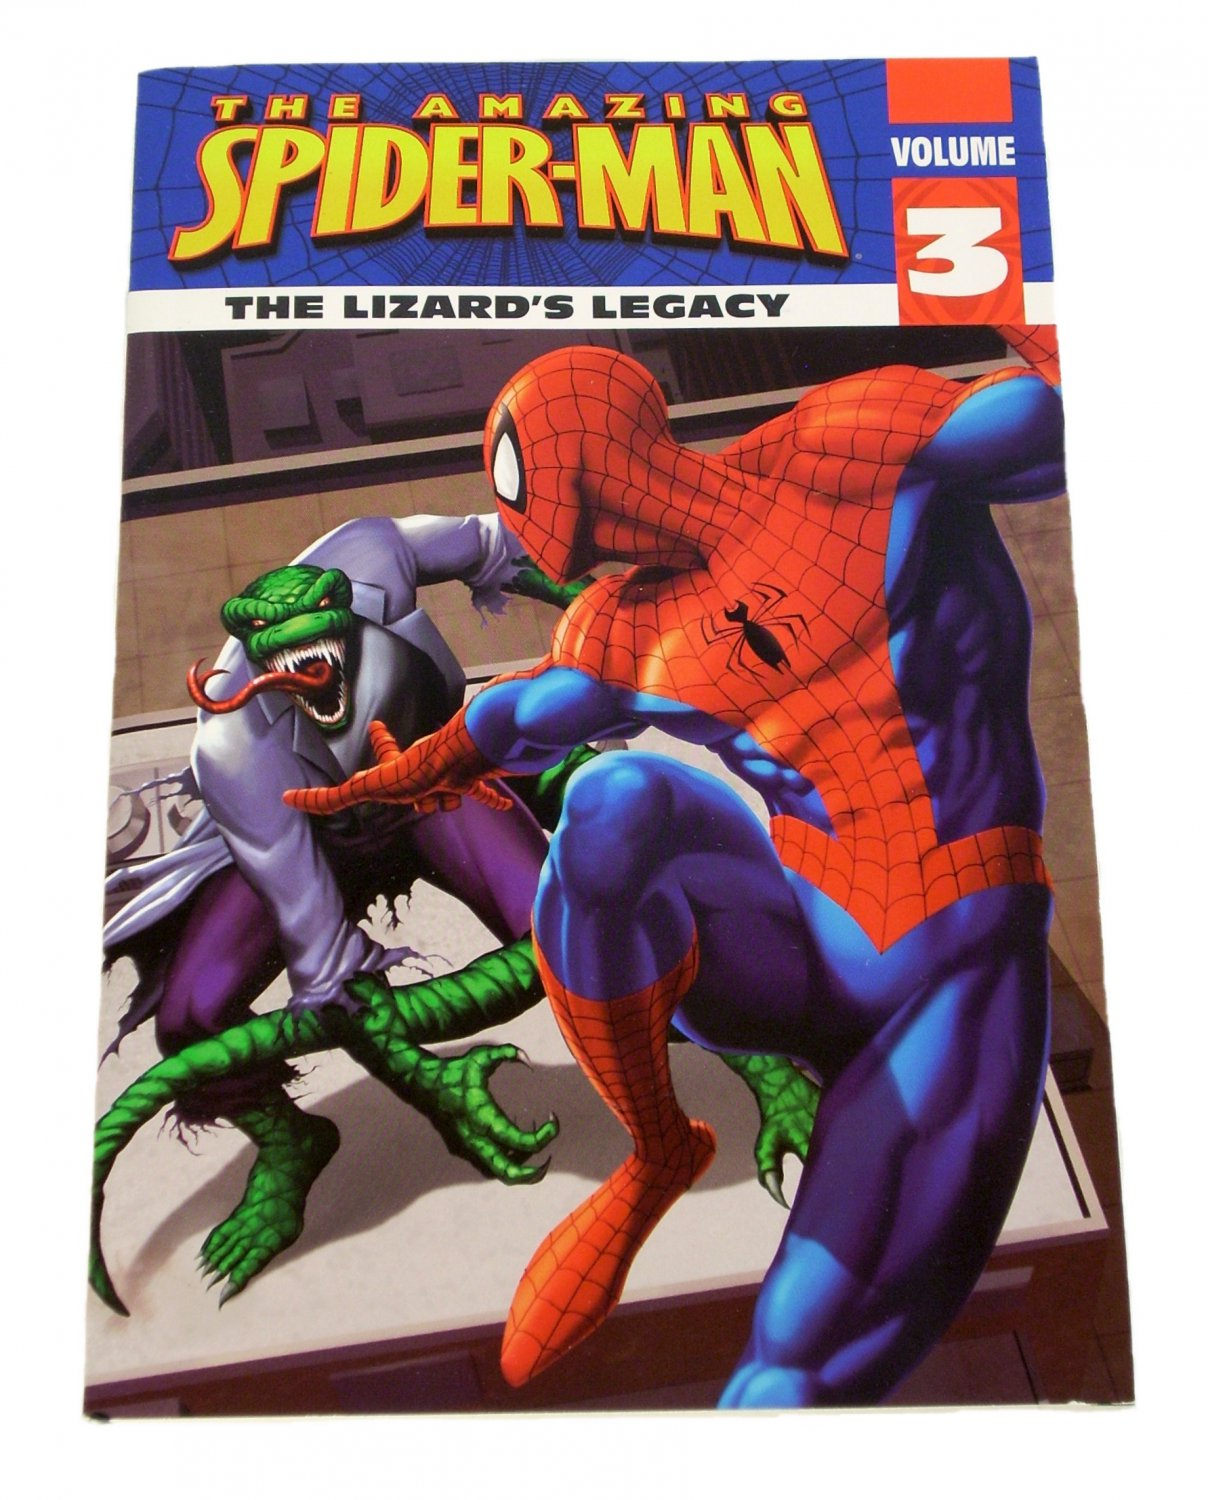 The Amazing Spider-Man The Lizard's Legacy by Mark W. McVeigh 2009 Paperback